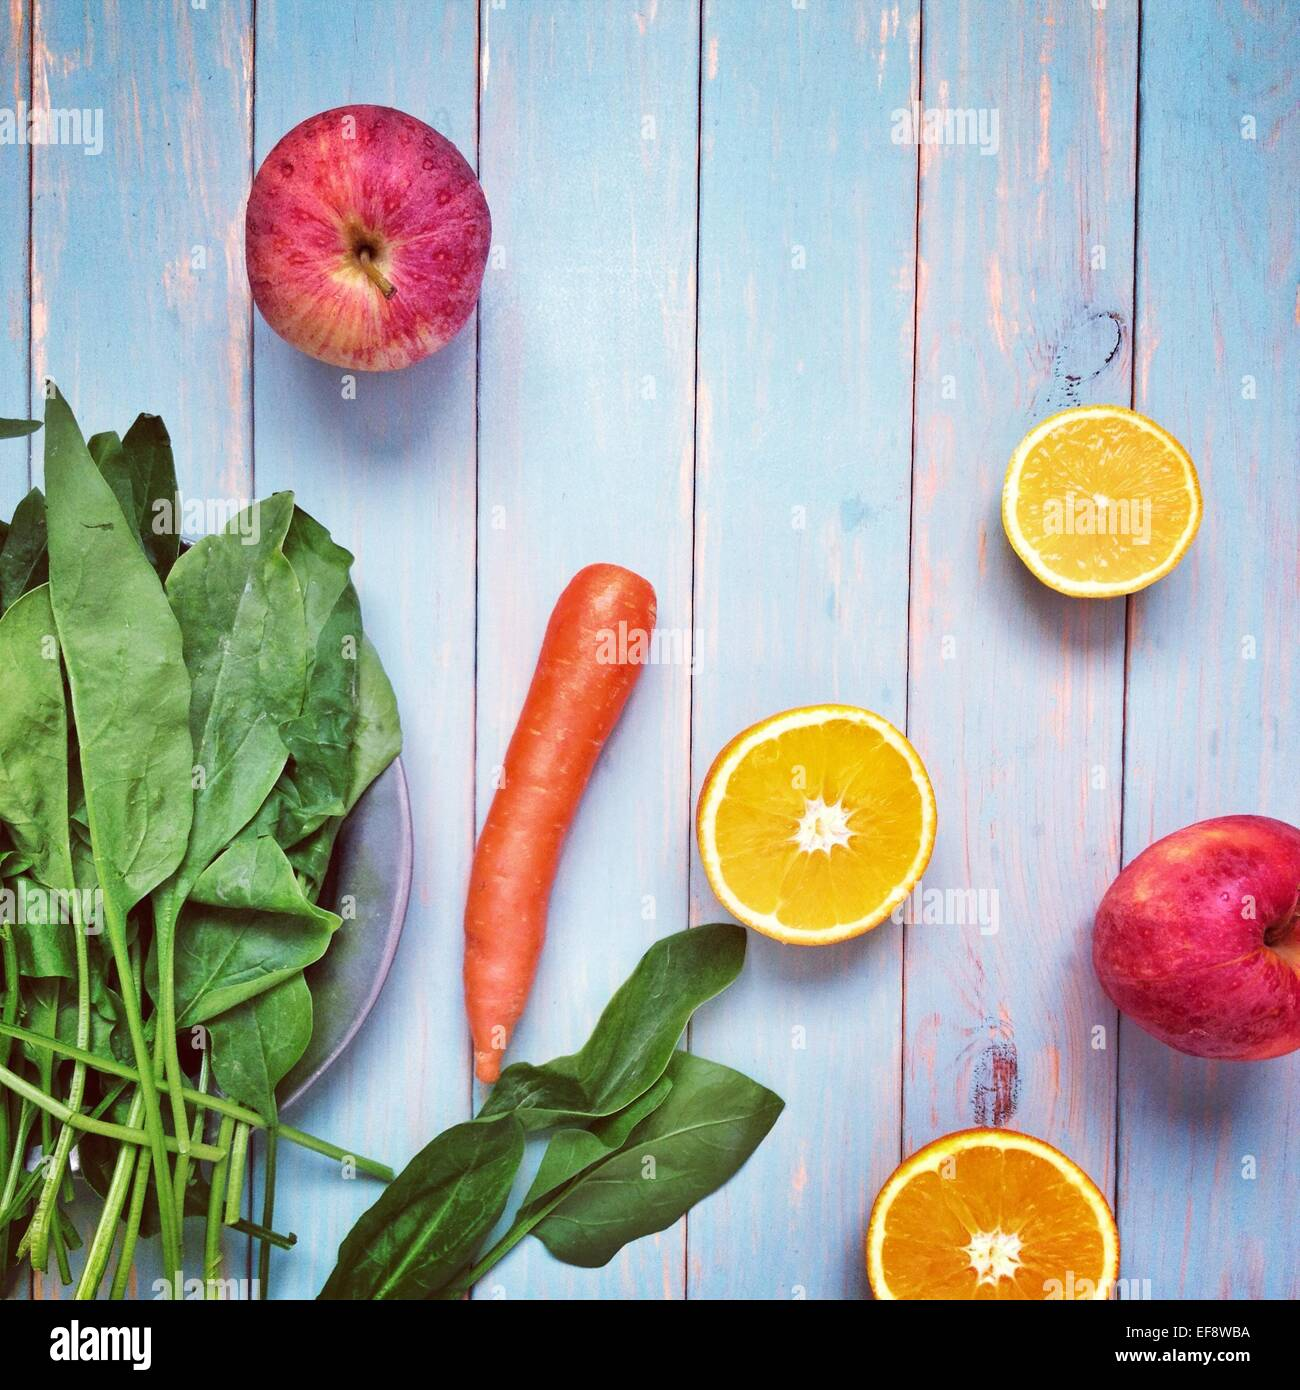 Arrangement of various fruits and vegetables - Stock Image